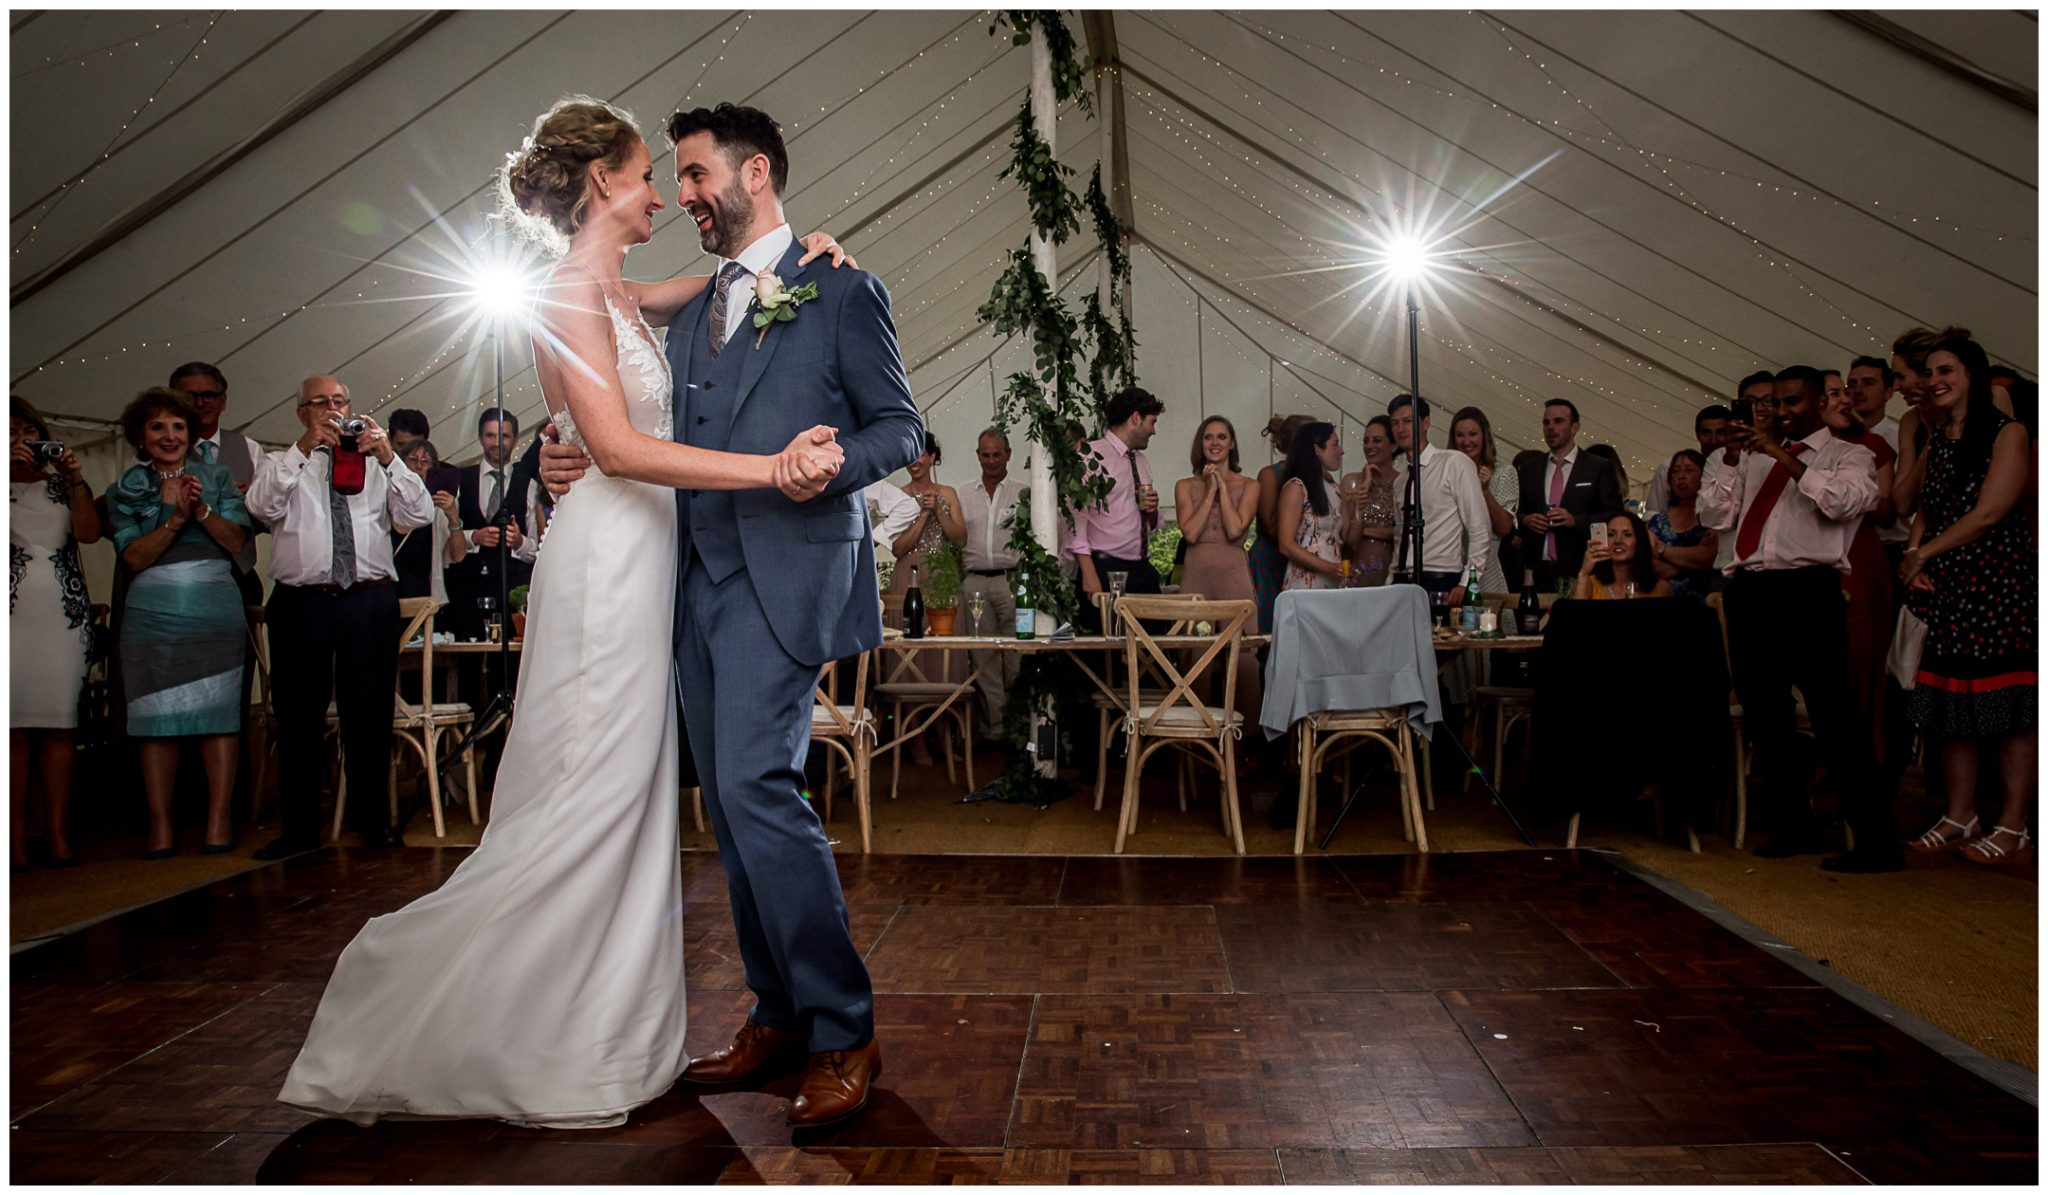 The wedding couple's first dance at a marquee reception